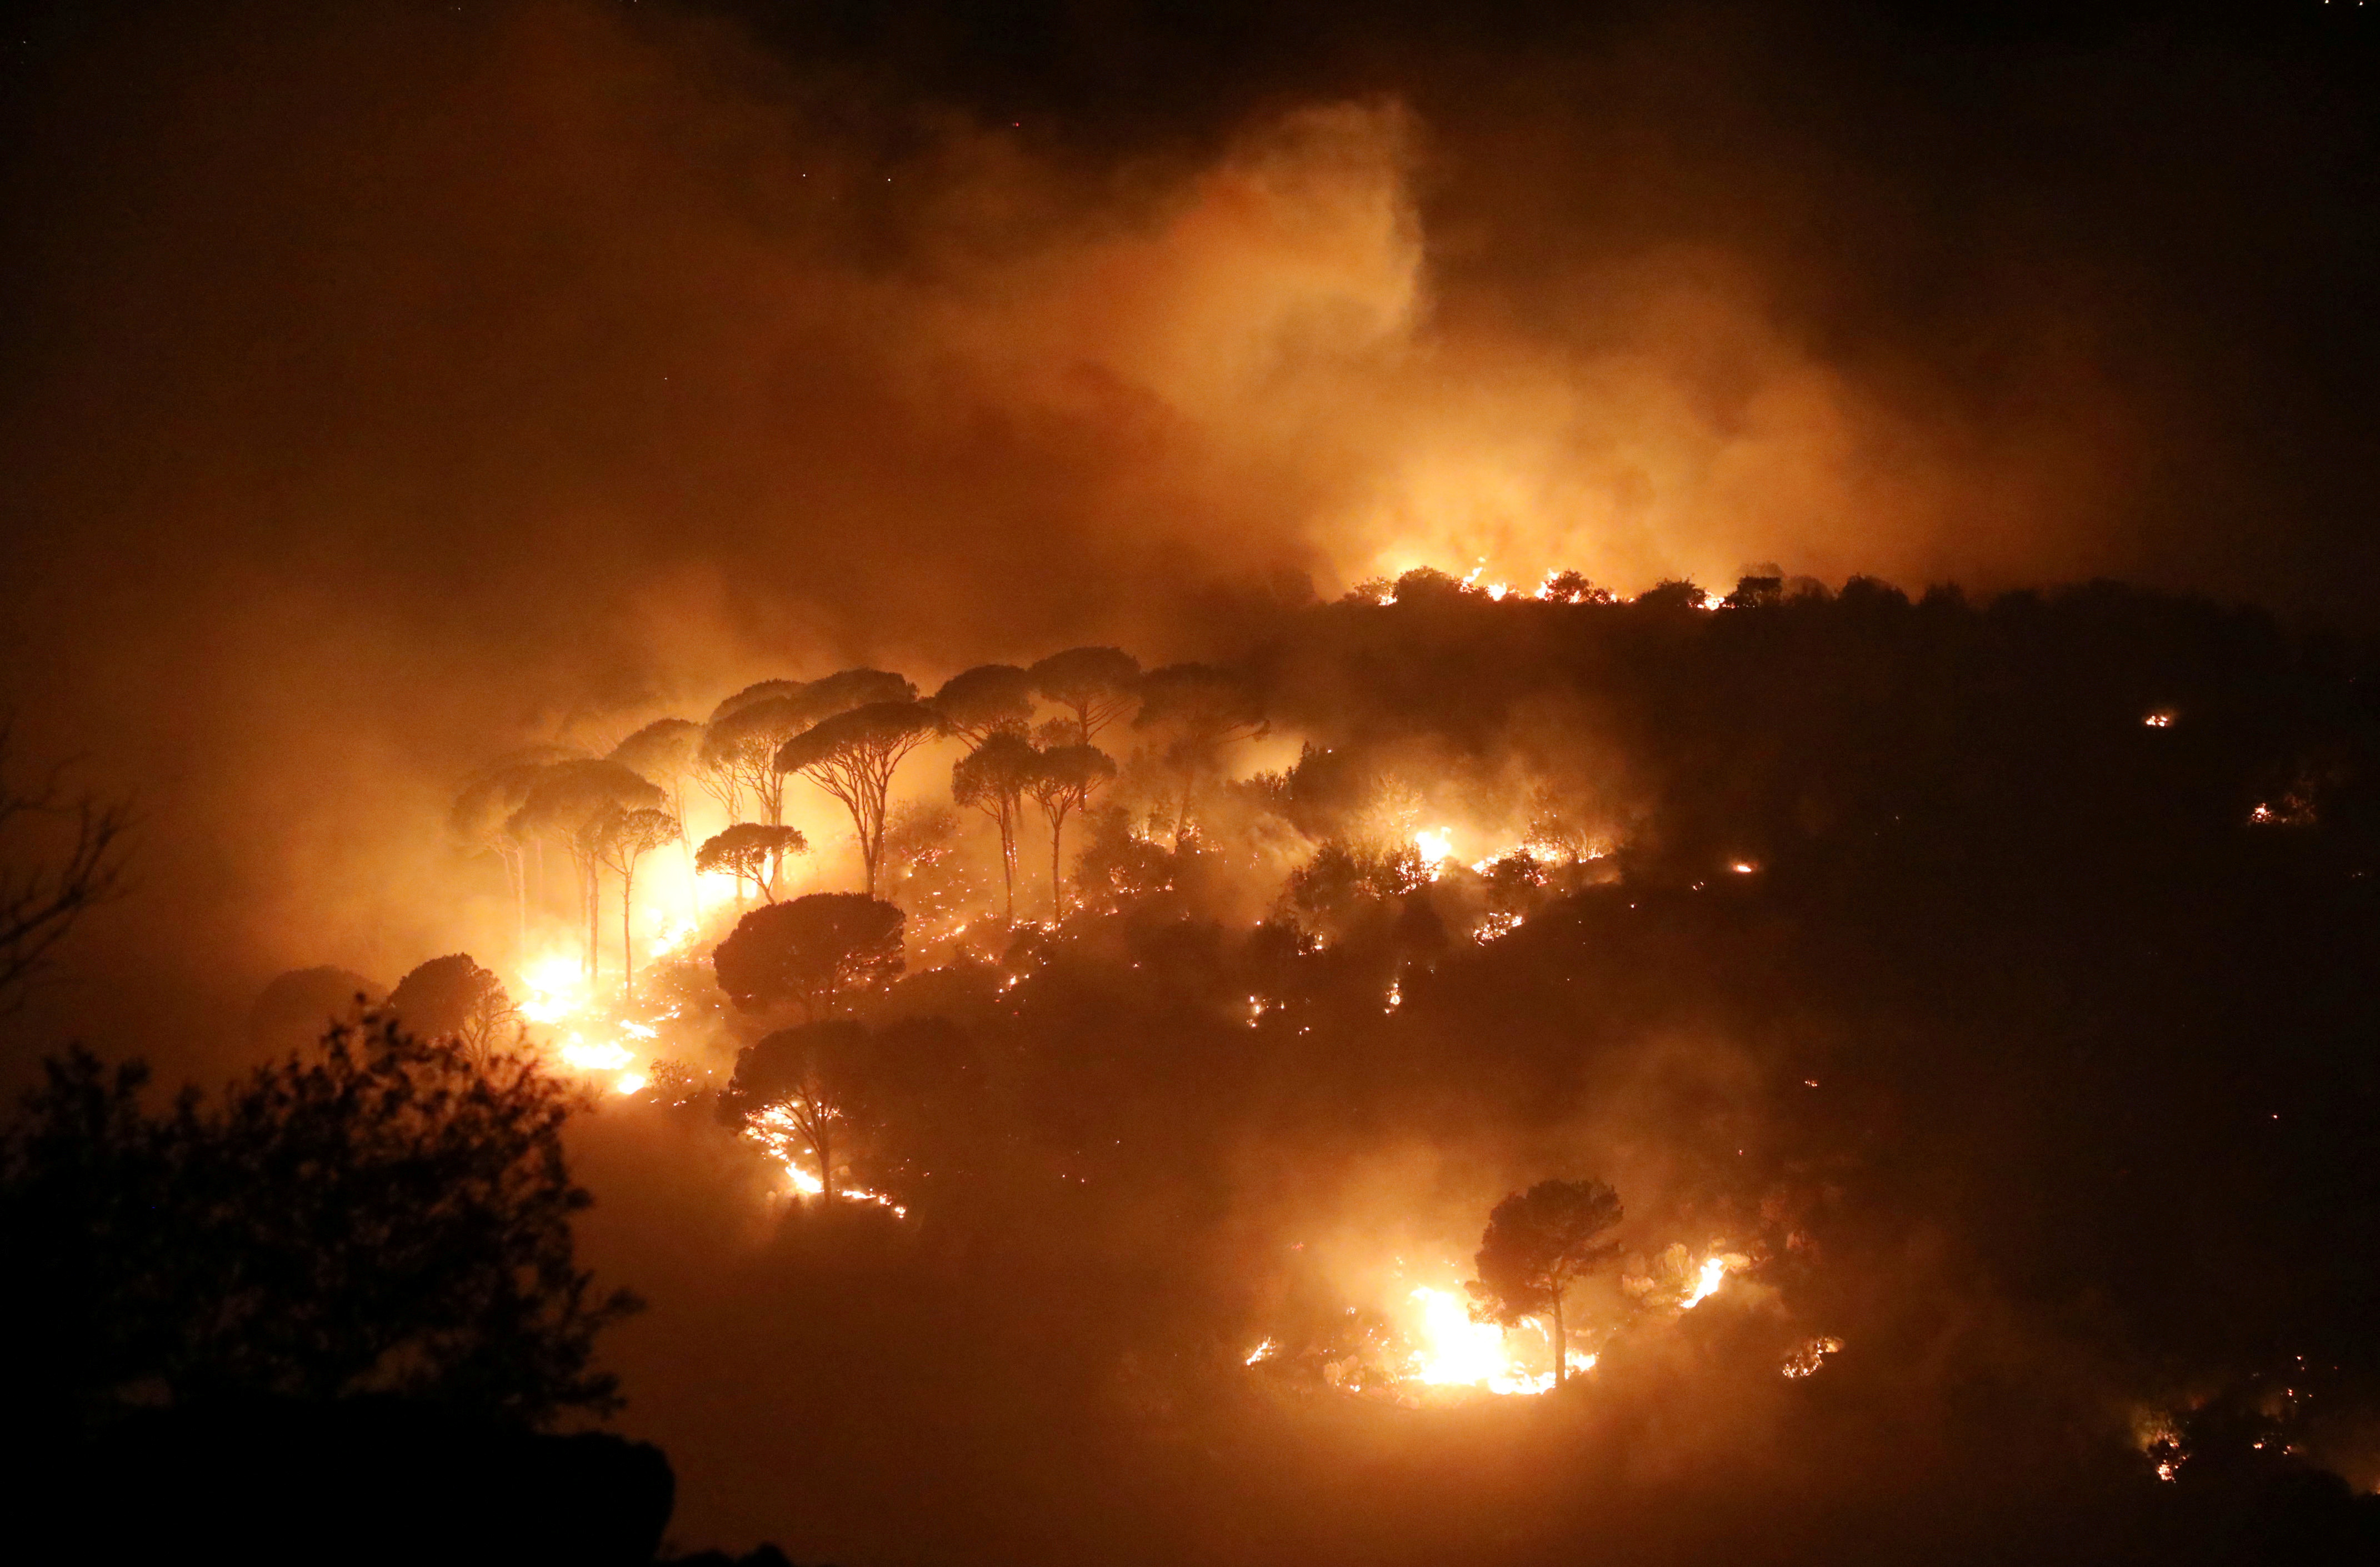 Wildfires burn a forest in Chbaniyeh village, Lebanon October 9, 2020. Picture taken October 9, 2020. REUTERS/Mohamed Azakir     TPX IMAGES OF THE DAY - RC2JFJ9ISV4P